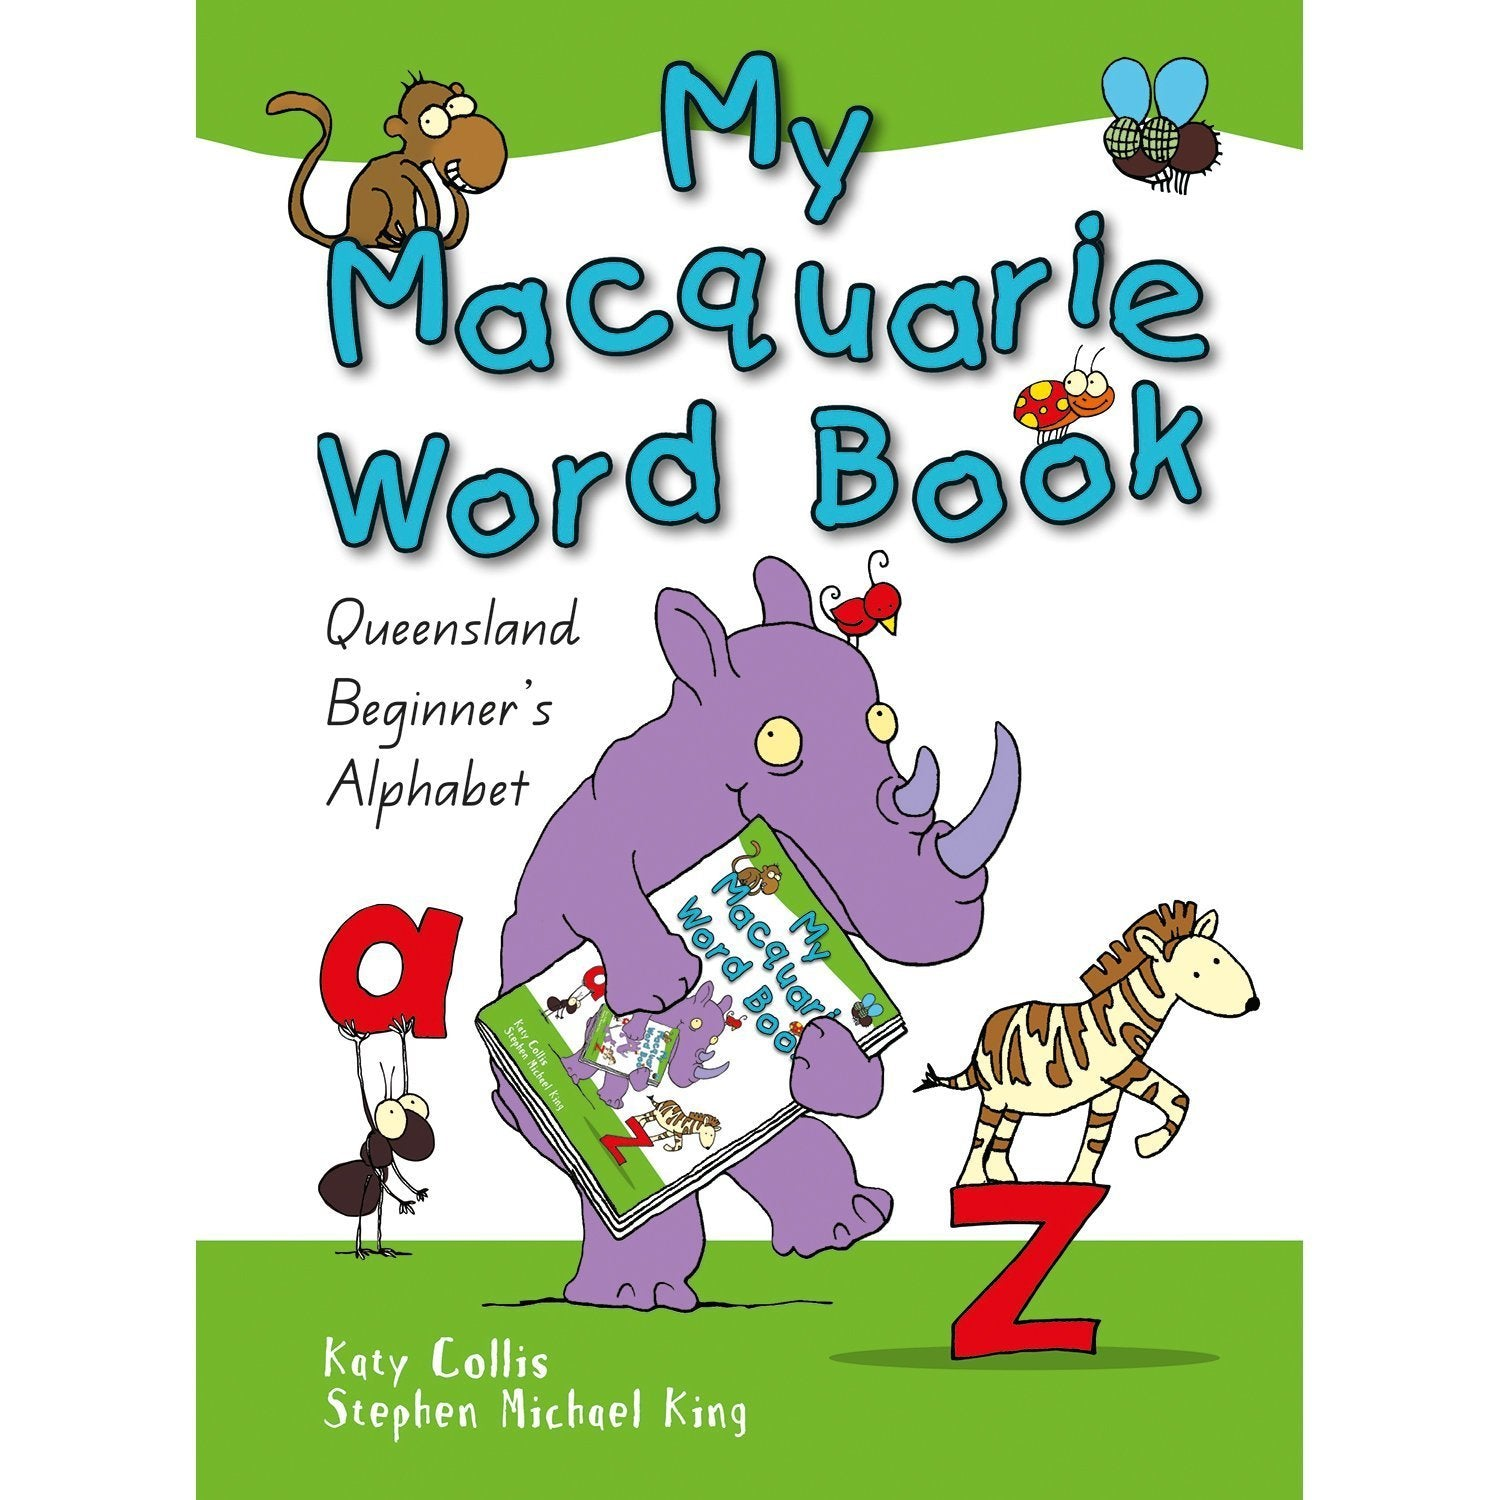 My Macquarie Word Book for Queensland